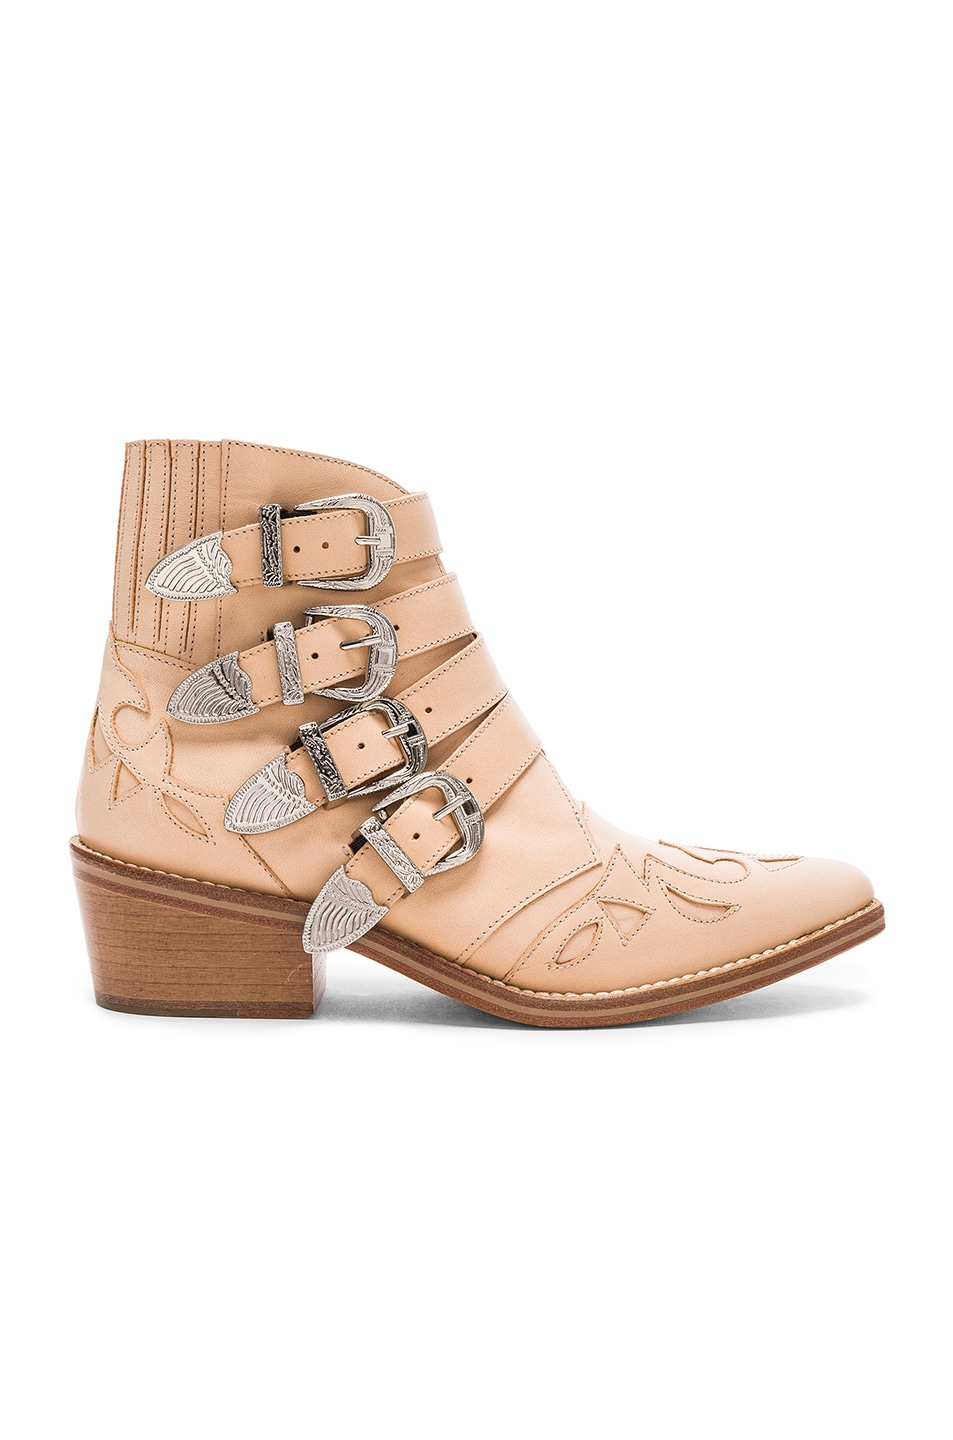 Image 1 of TOGA PULLA Leather Booties in Beige Leather